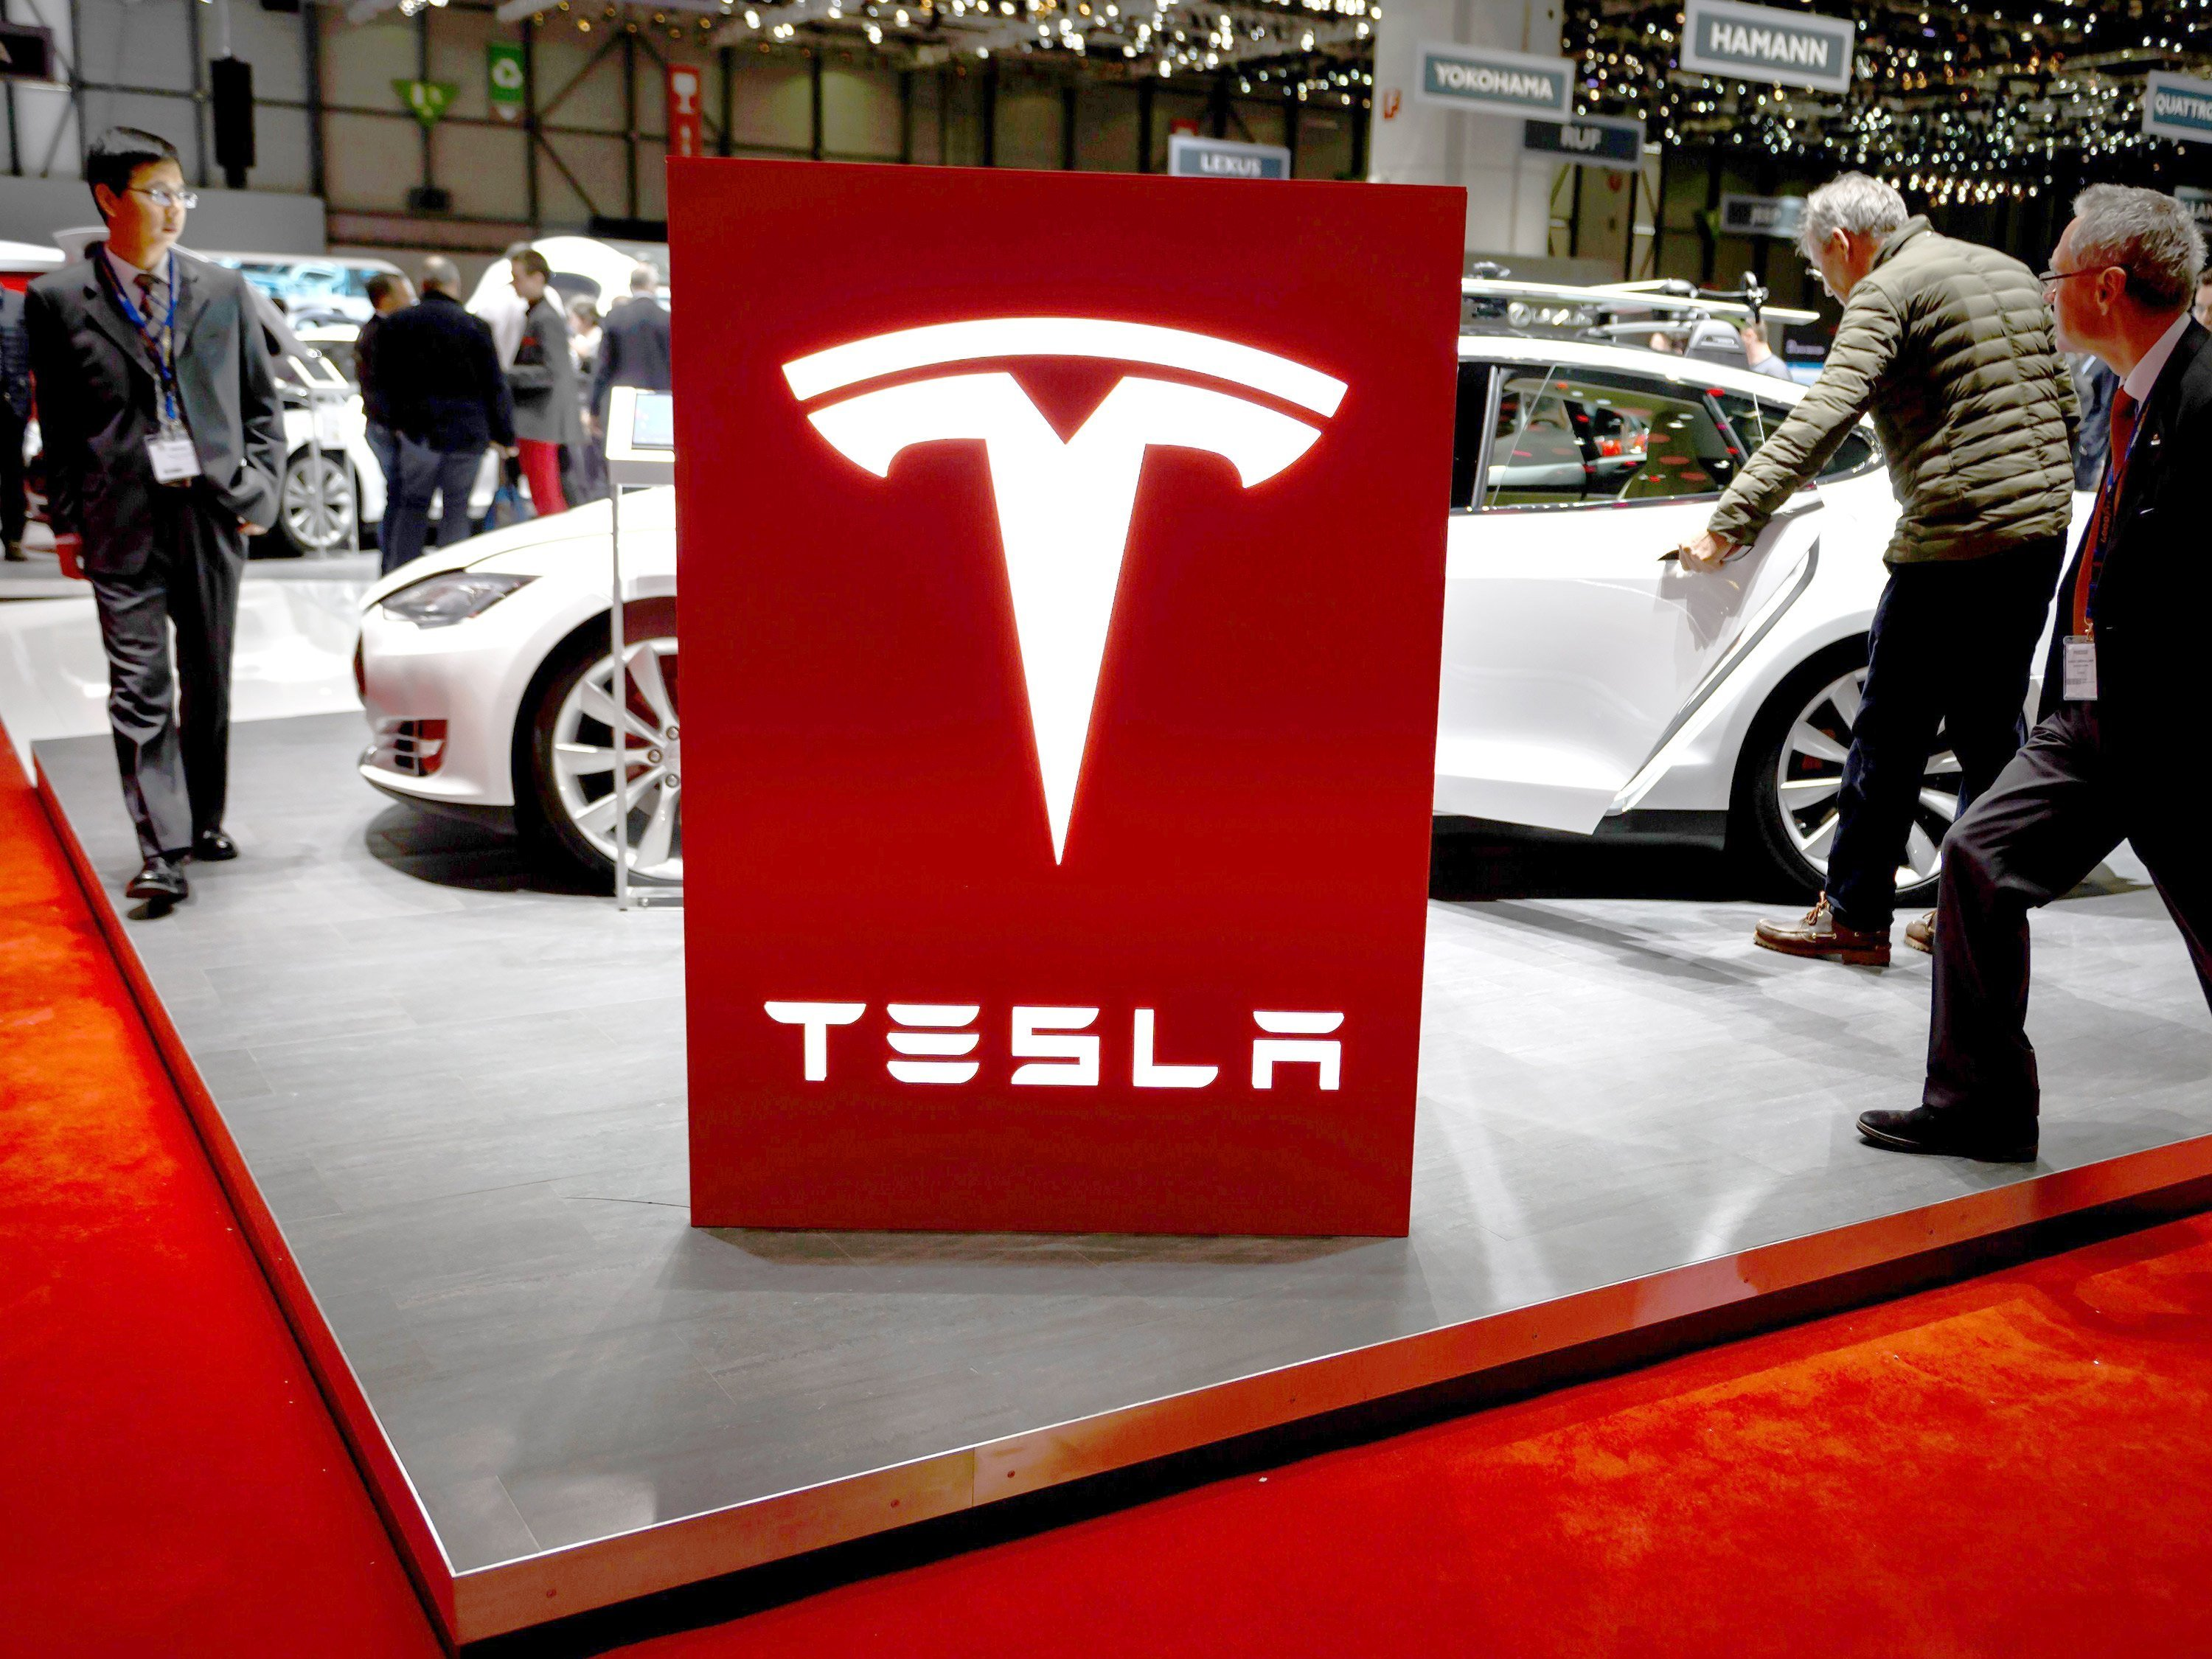 Tesla factory workplace conditions under investigation